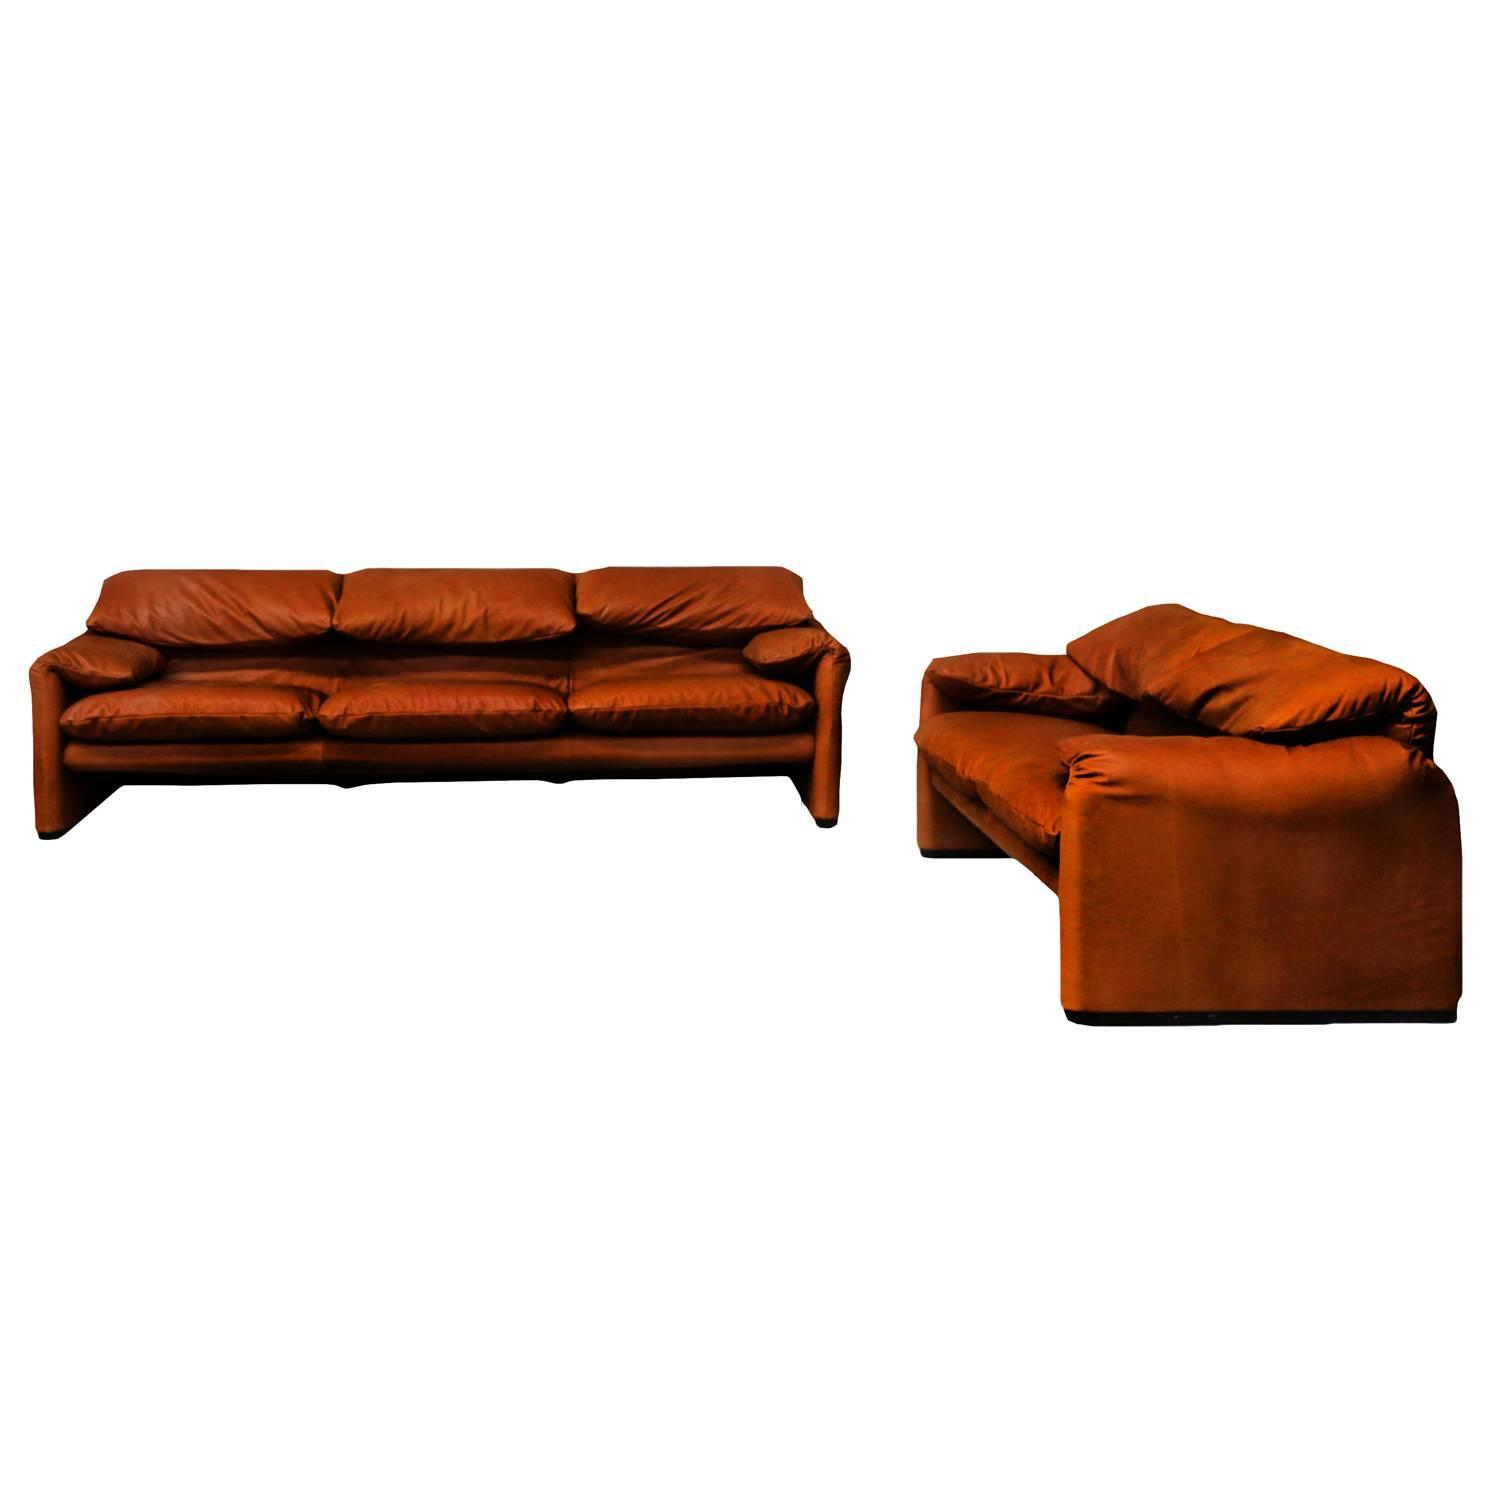 "Vintage Cognac Leather ""Maralunga"" Sofas by Vico Magistretti for Cassina"